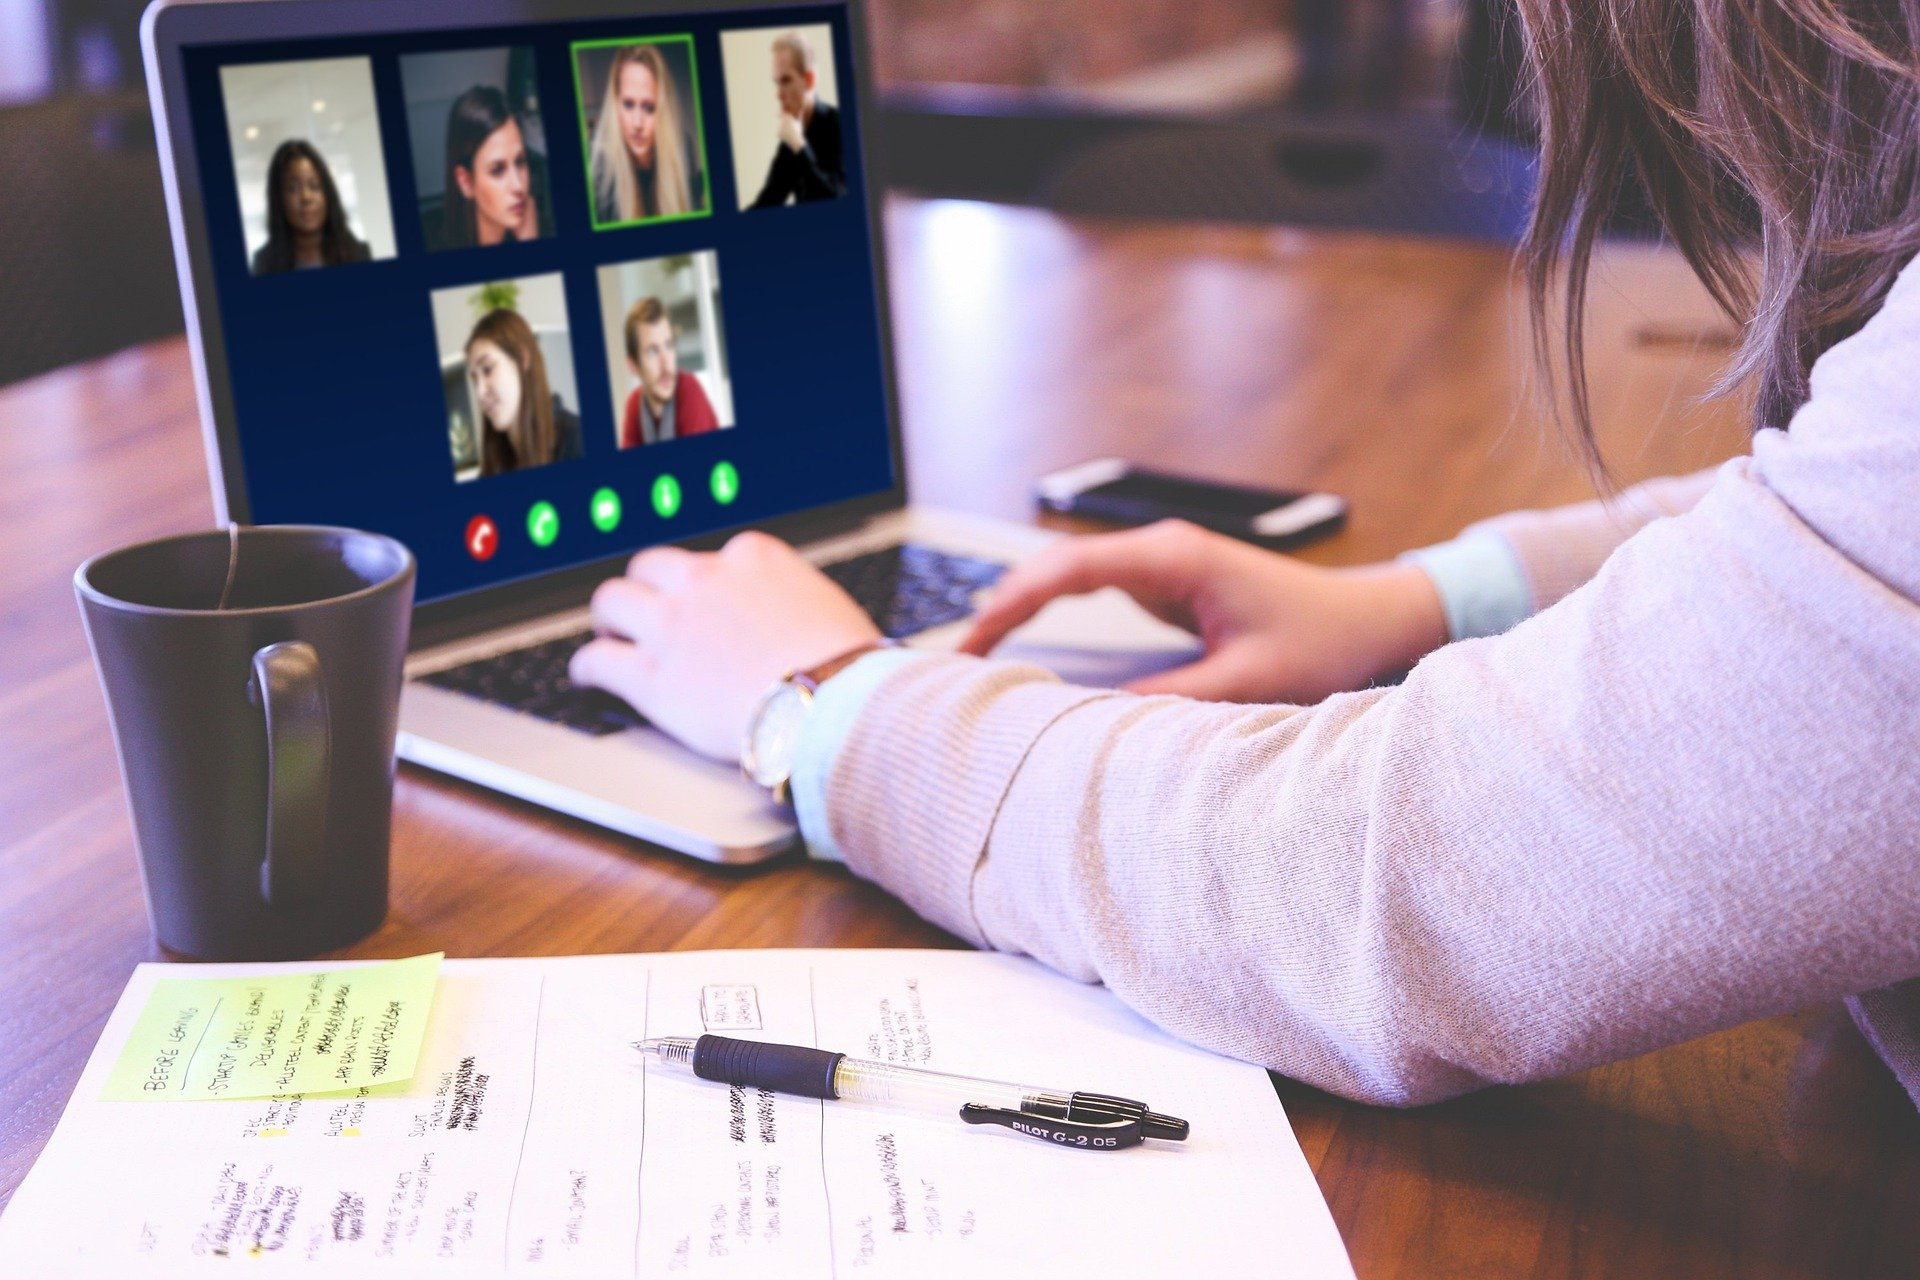 A person joins a video conference